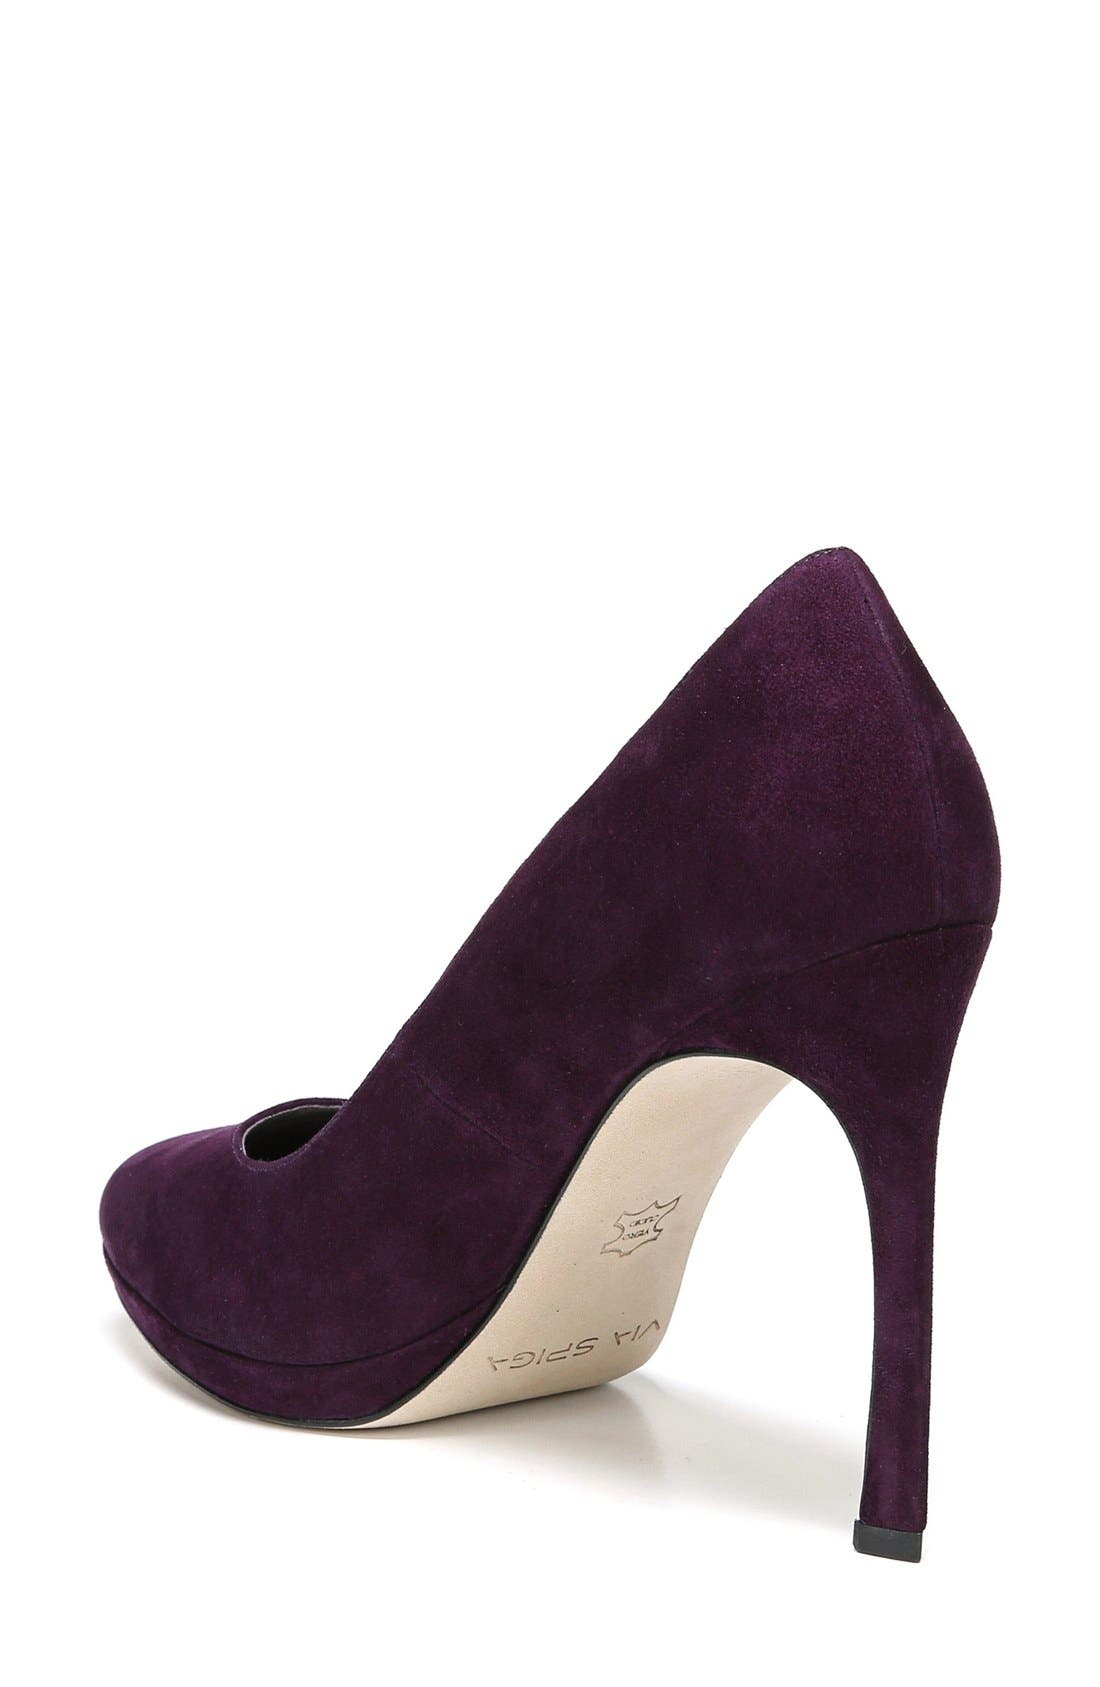 Alternate Image 2  - Via Spiga 'Siena' Platform Pump (Women)